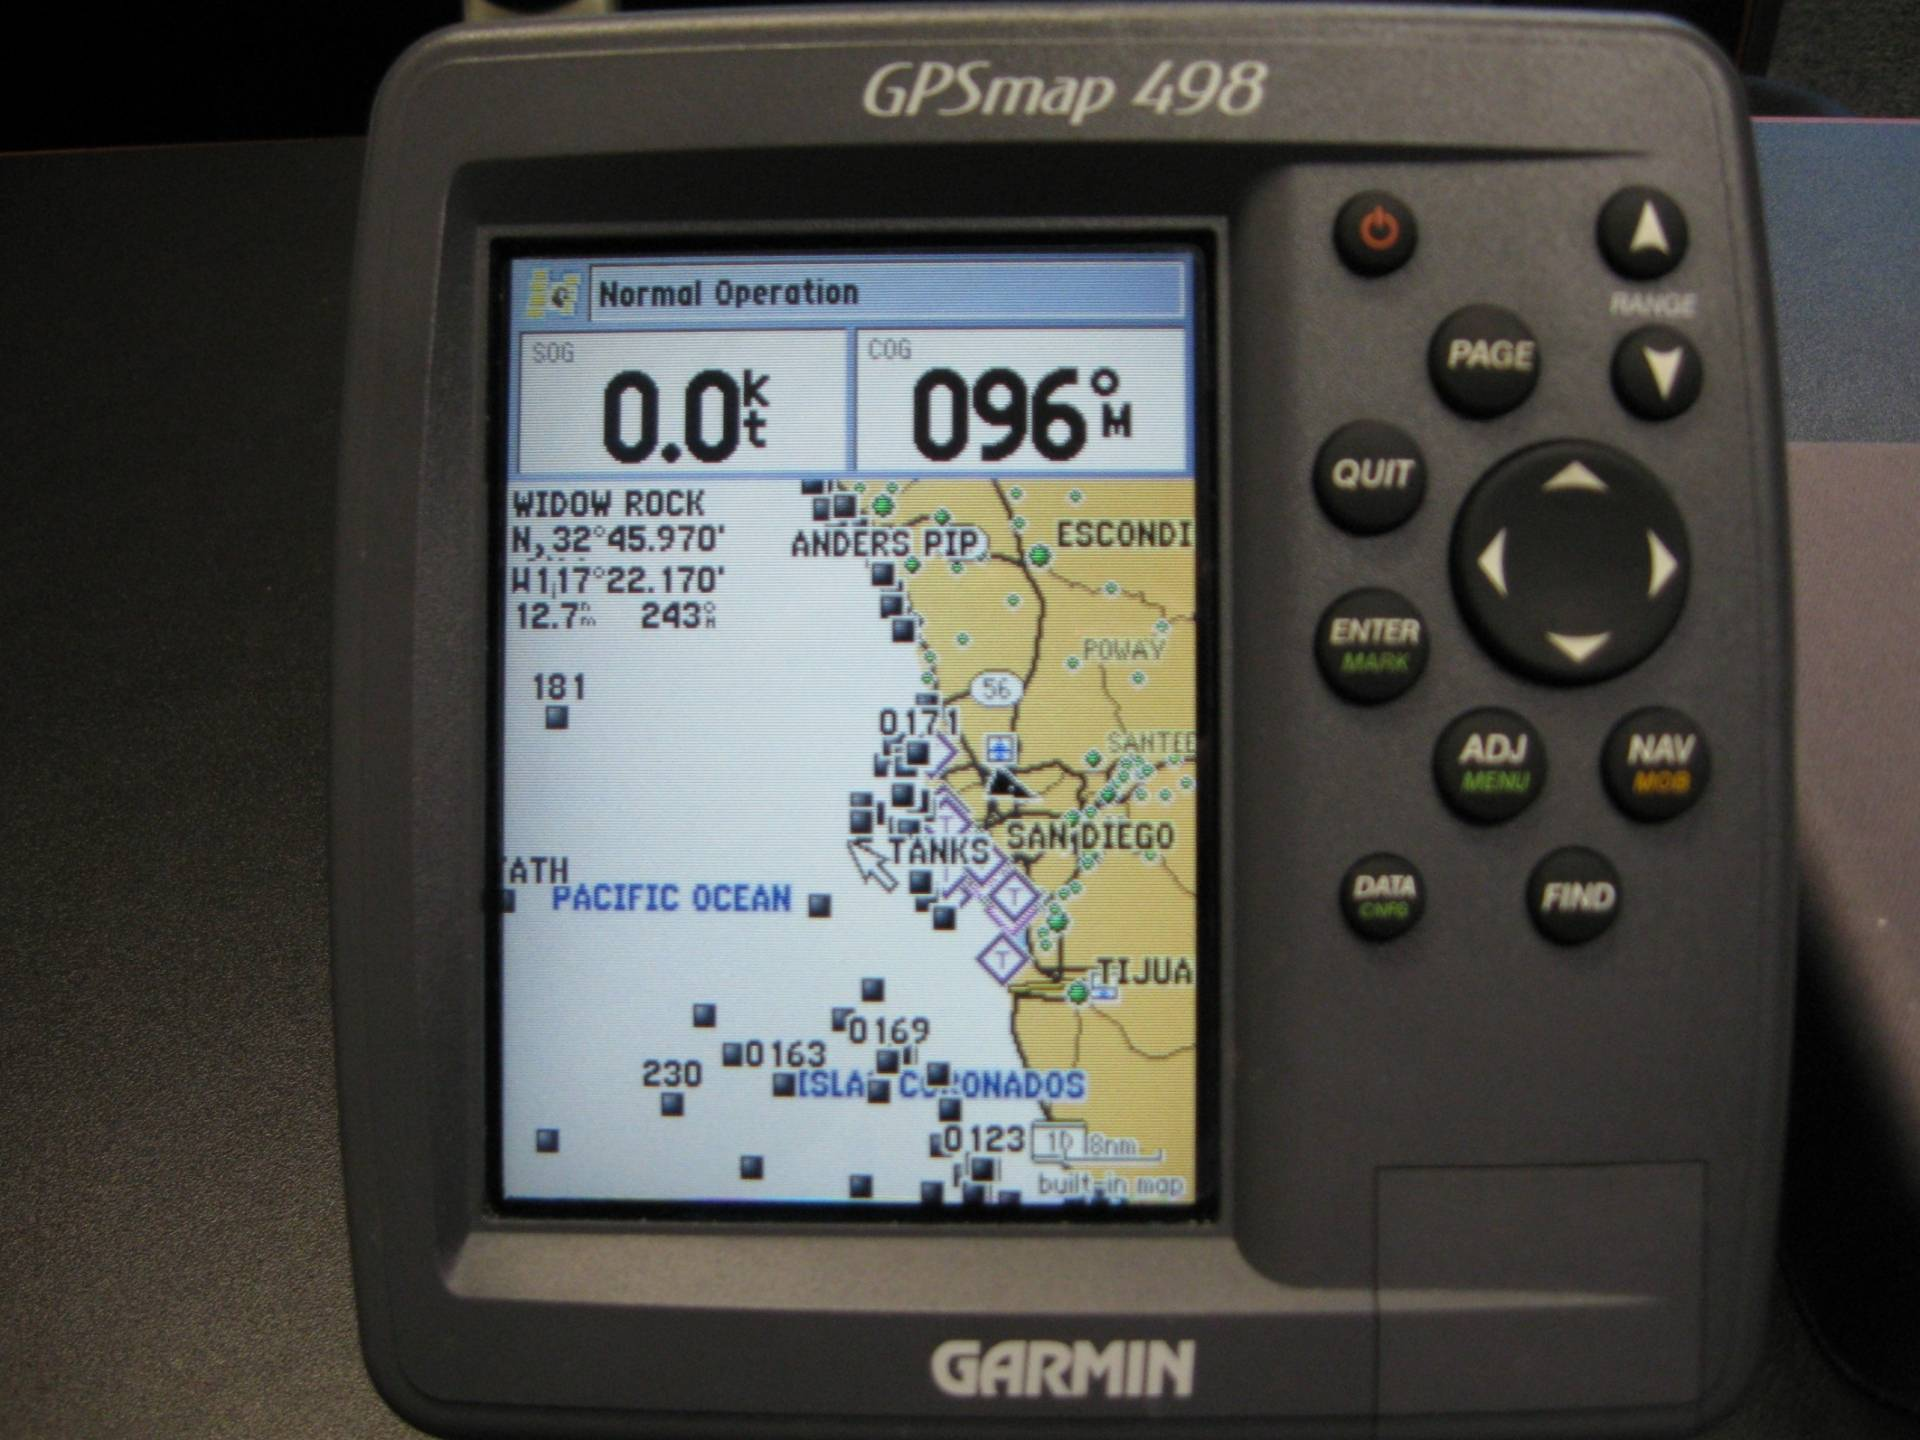 934455_802ce9e6110a02de3869edae333ca275 garmin 498 wiring diagram on garmin download wirning diagrams garmin 498 wiring diagram at bakdesigns.co